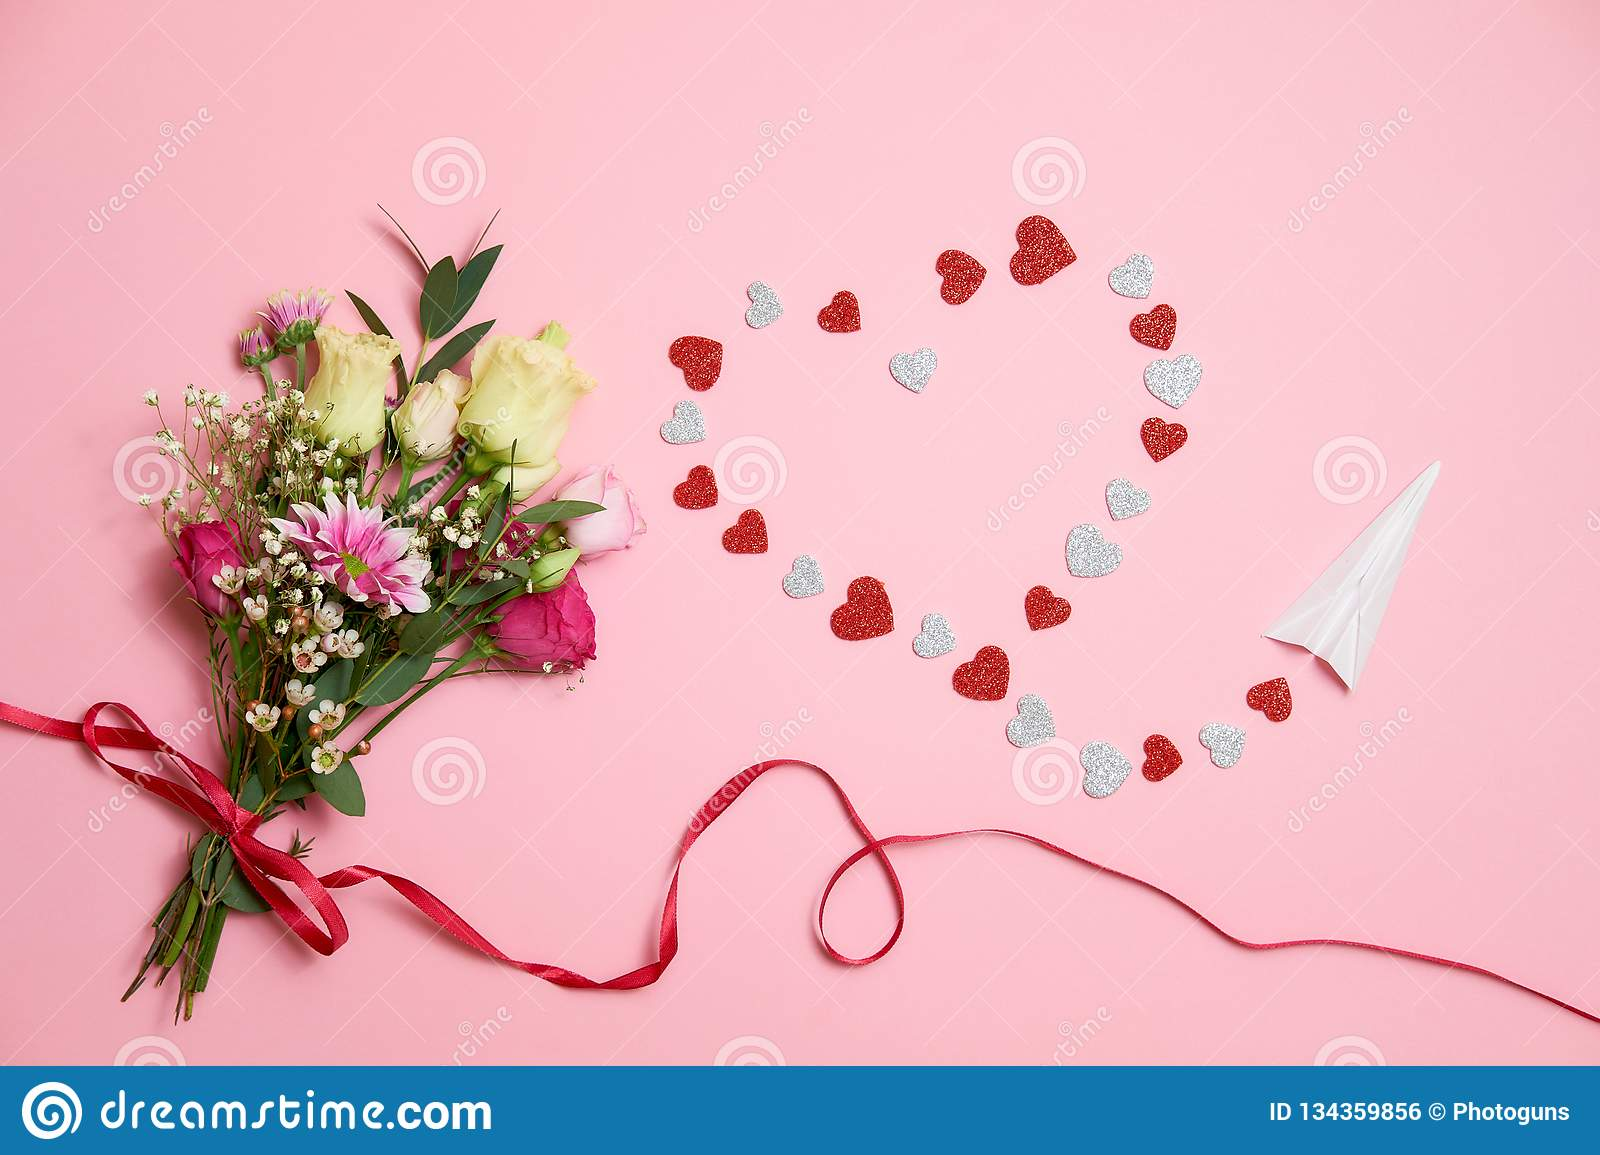 Valentines day composition : bouquet of flowers with ribbon bow, heart heart shape made of valentines cards and paper airplane. lo